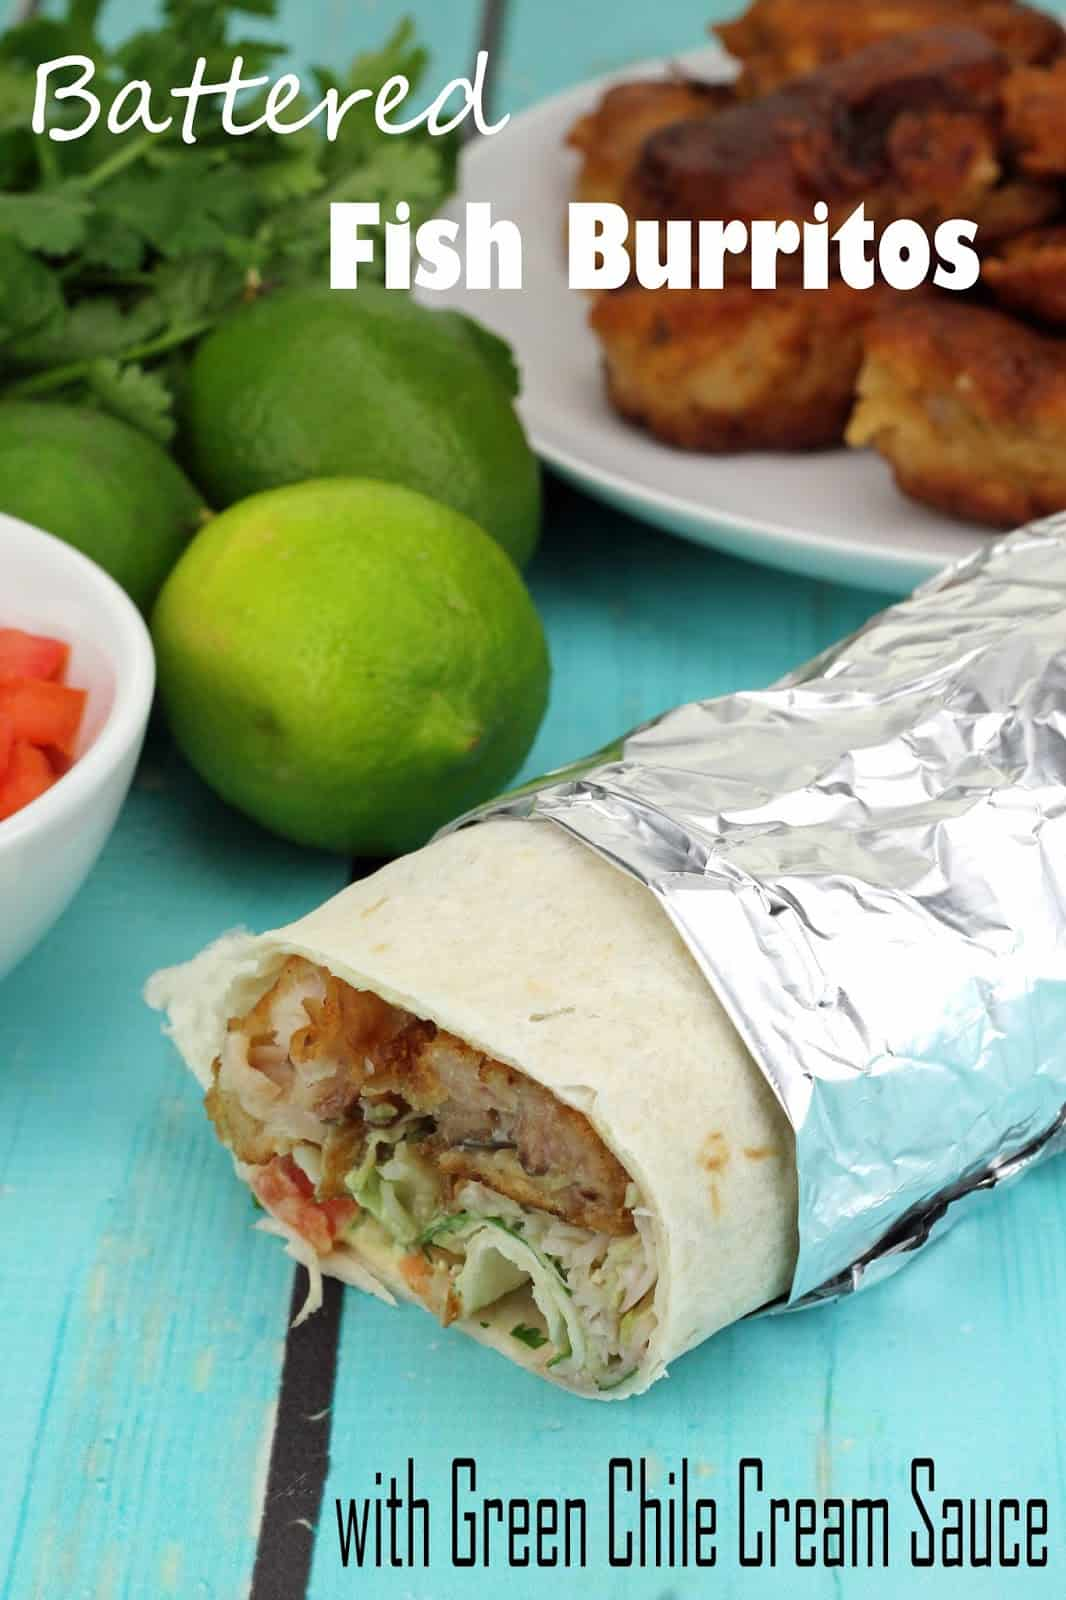 Battered Fish Burritos with Green Chile Sauce cut open to show the insides and wrapped in foil